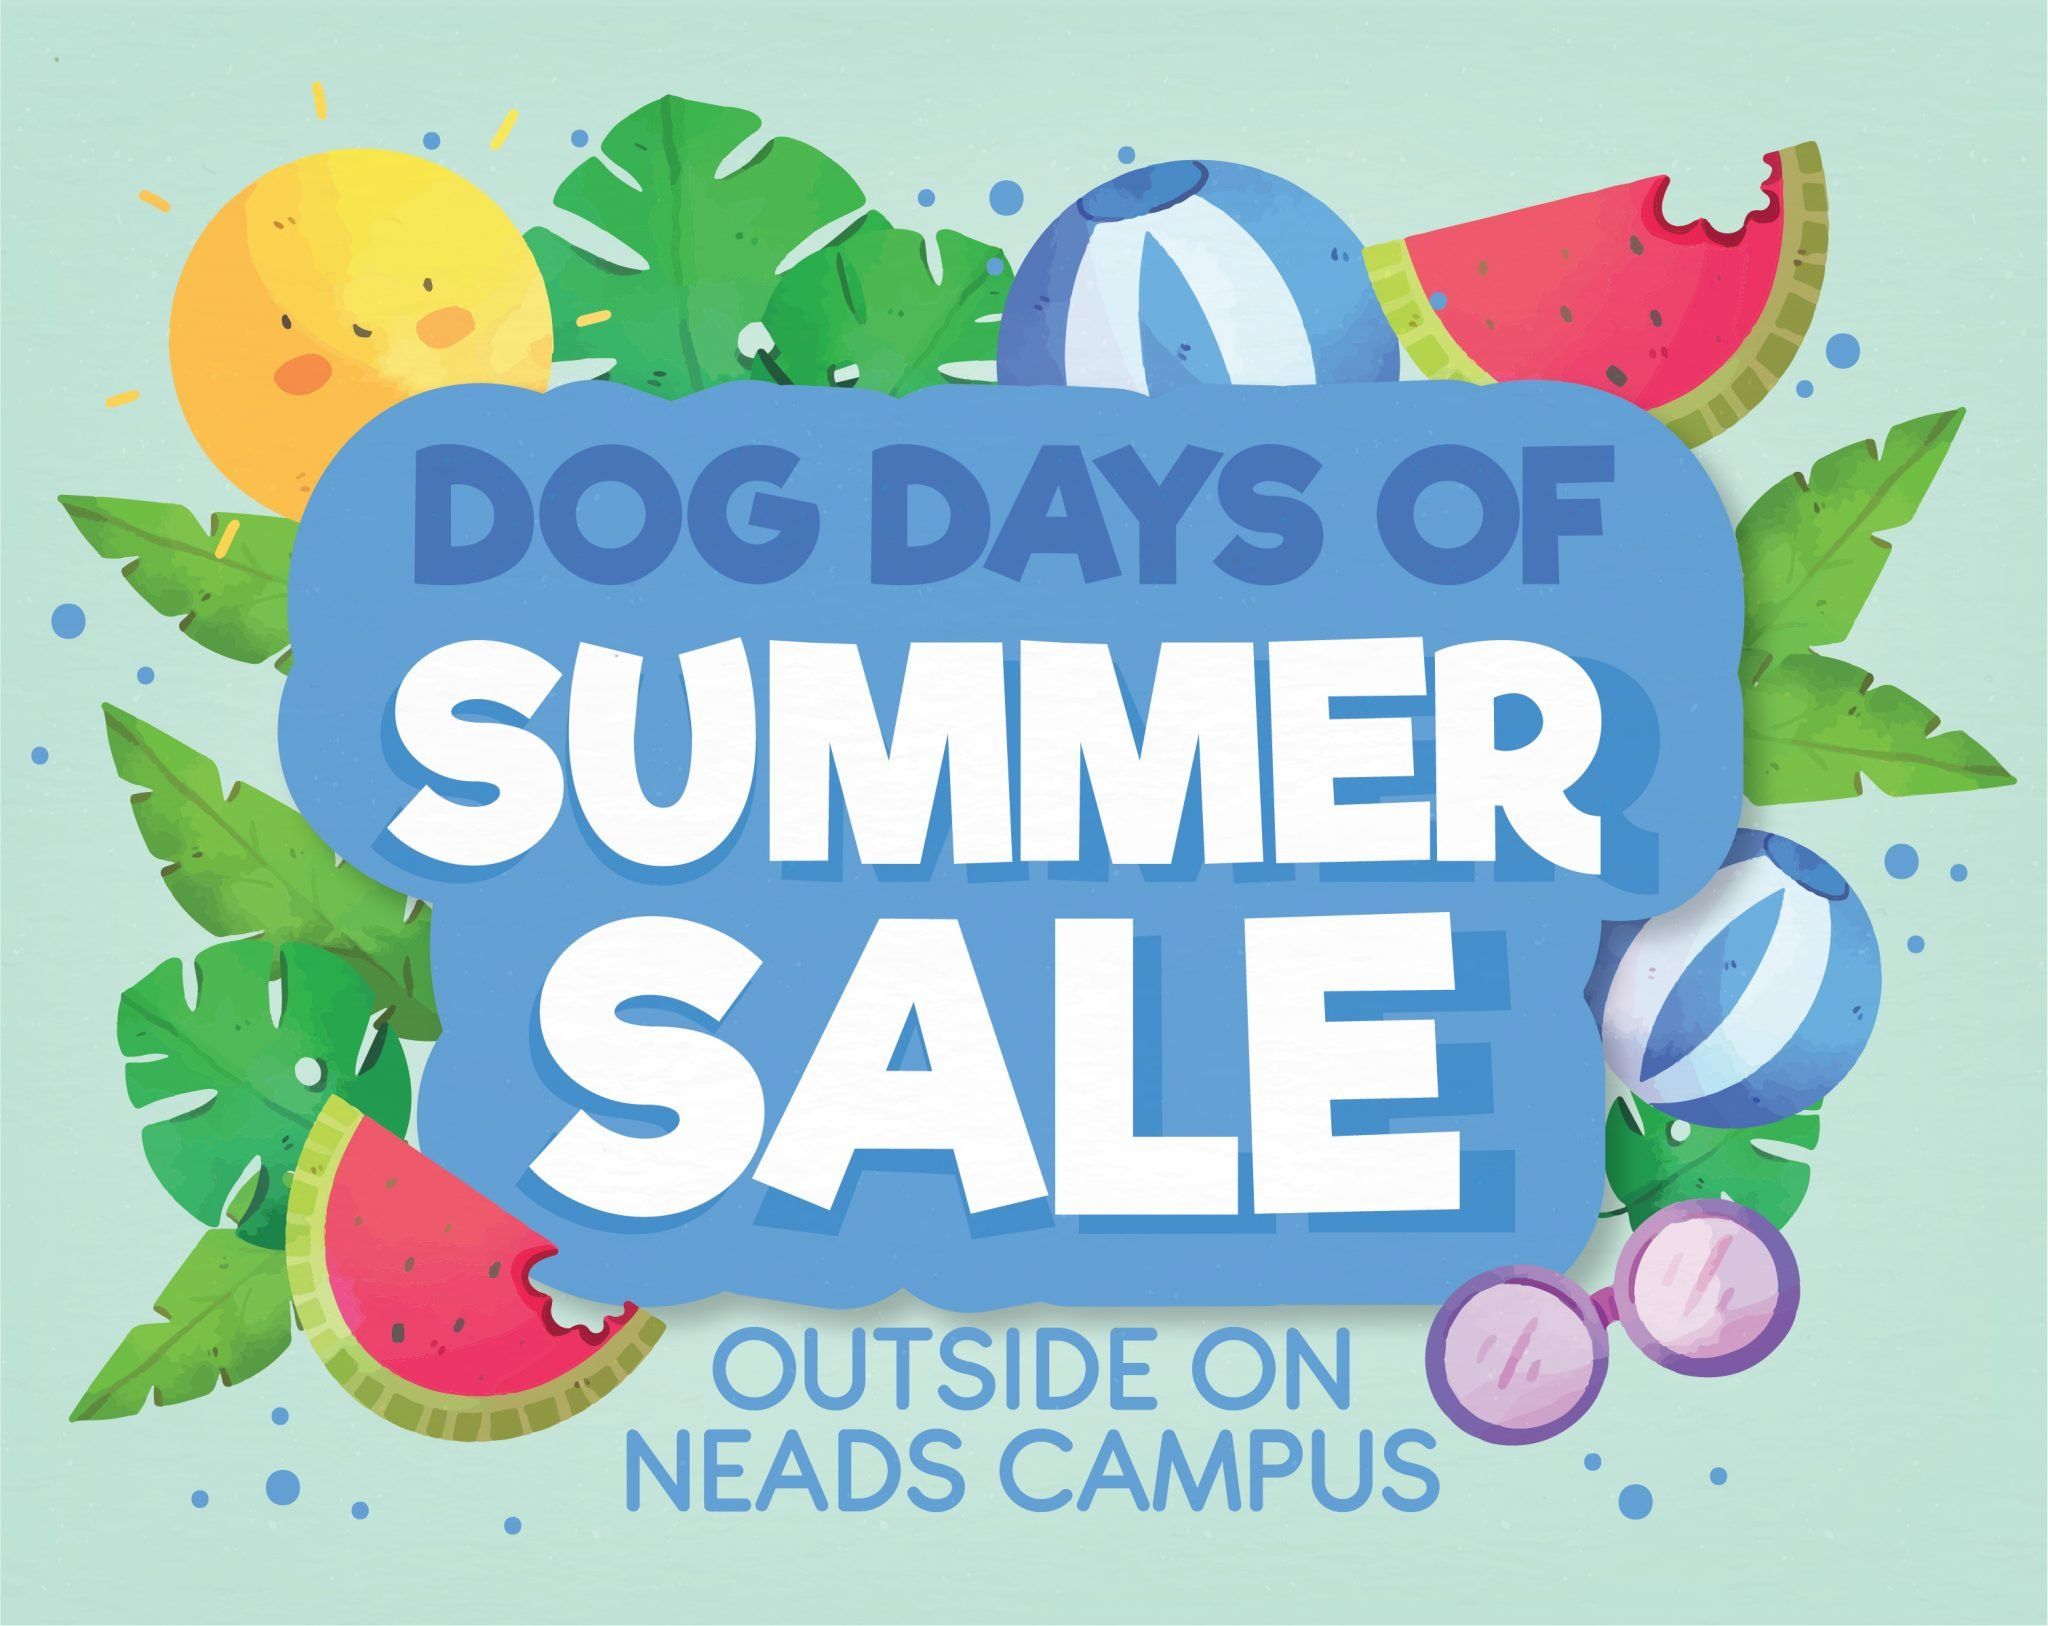 Graphic-Dog Days of Summer Sale